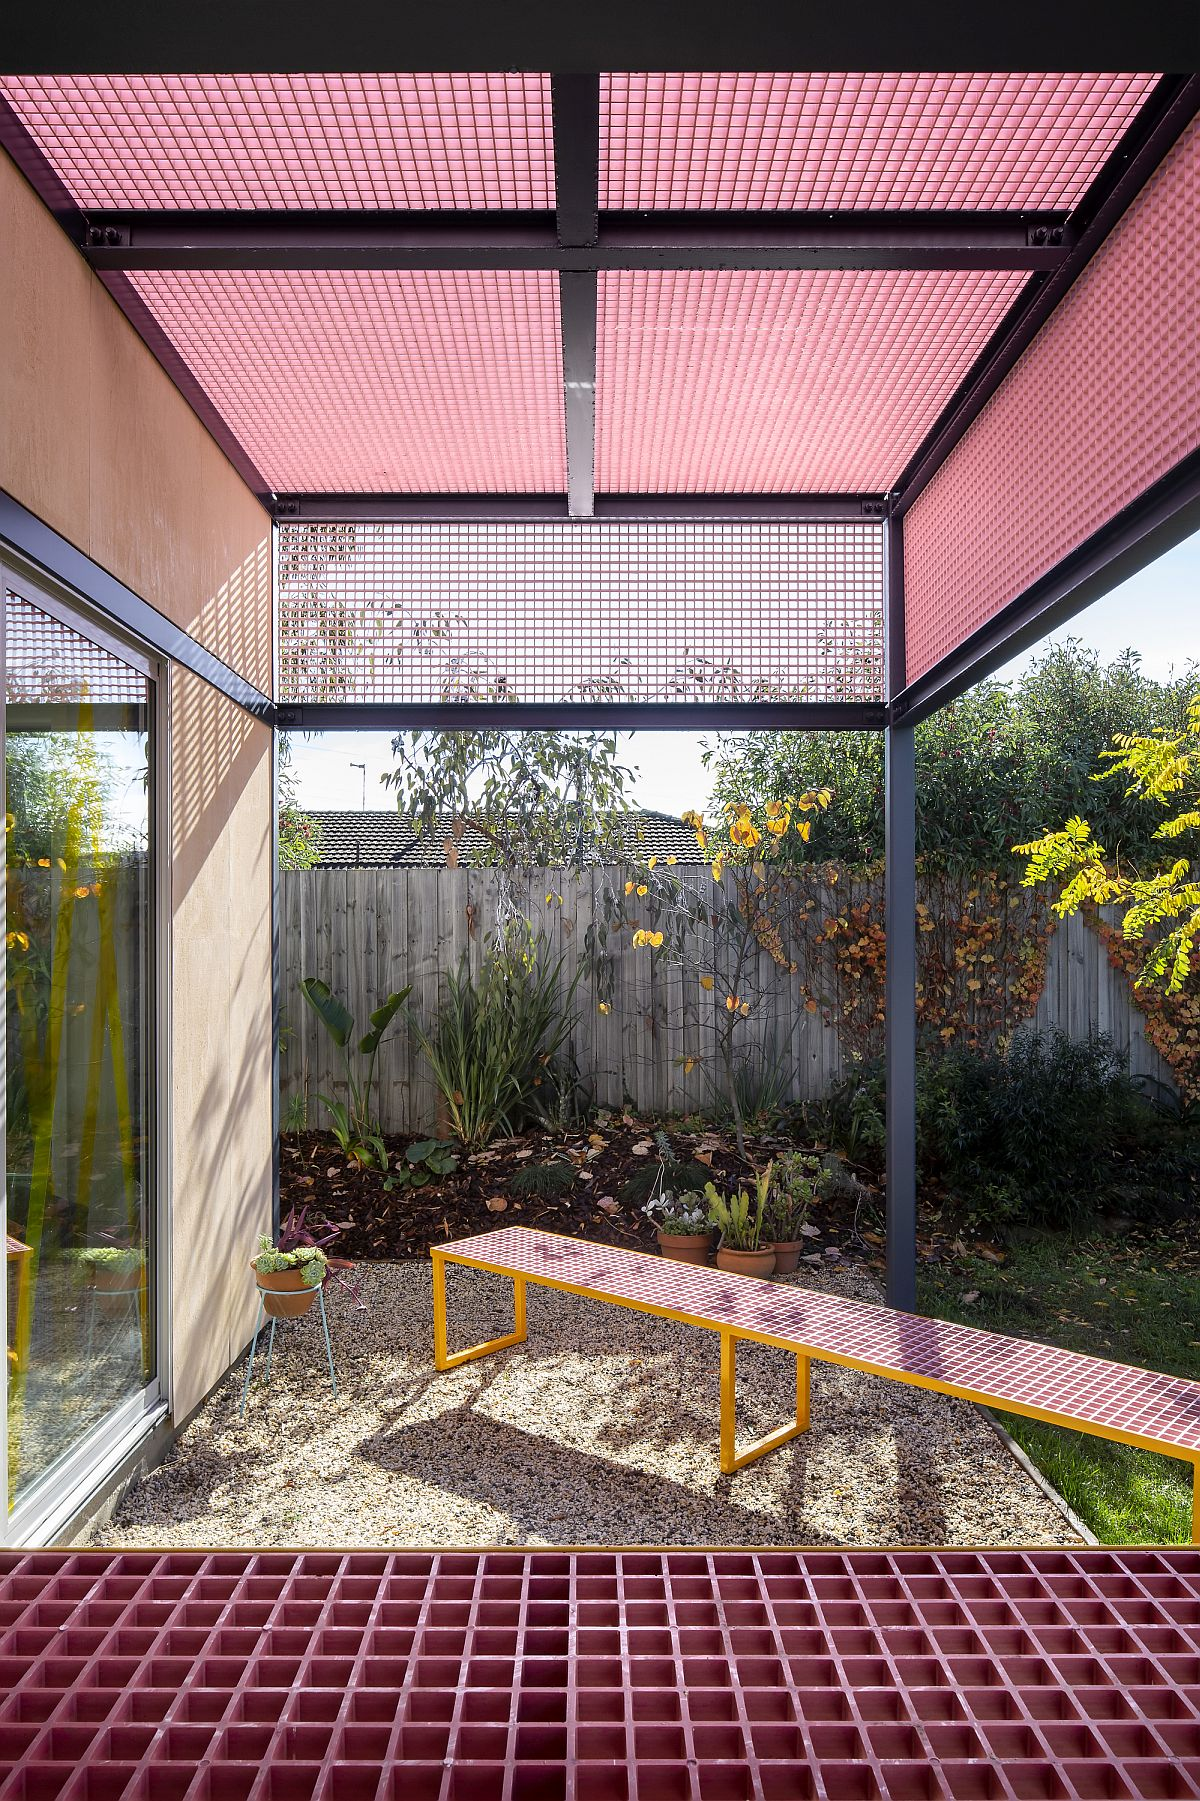 Grid-structure-of-the-pergola-in-pink-leaves-a-lasting-impresion-98847